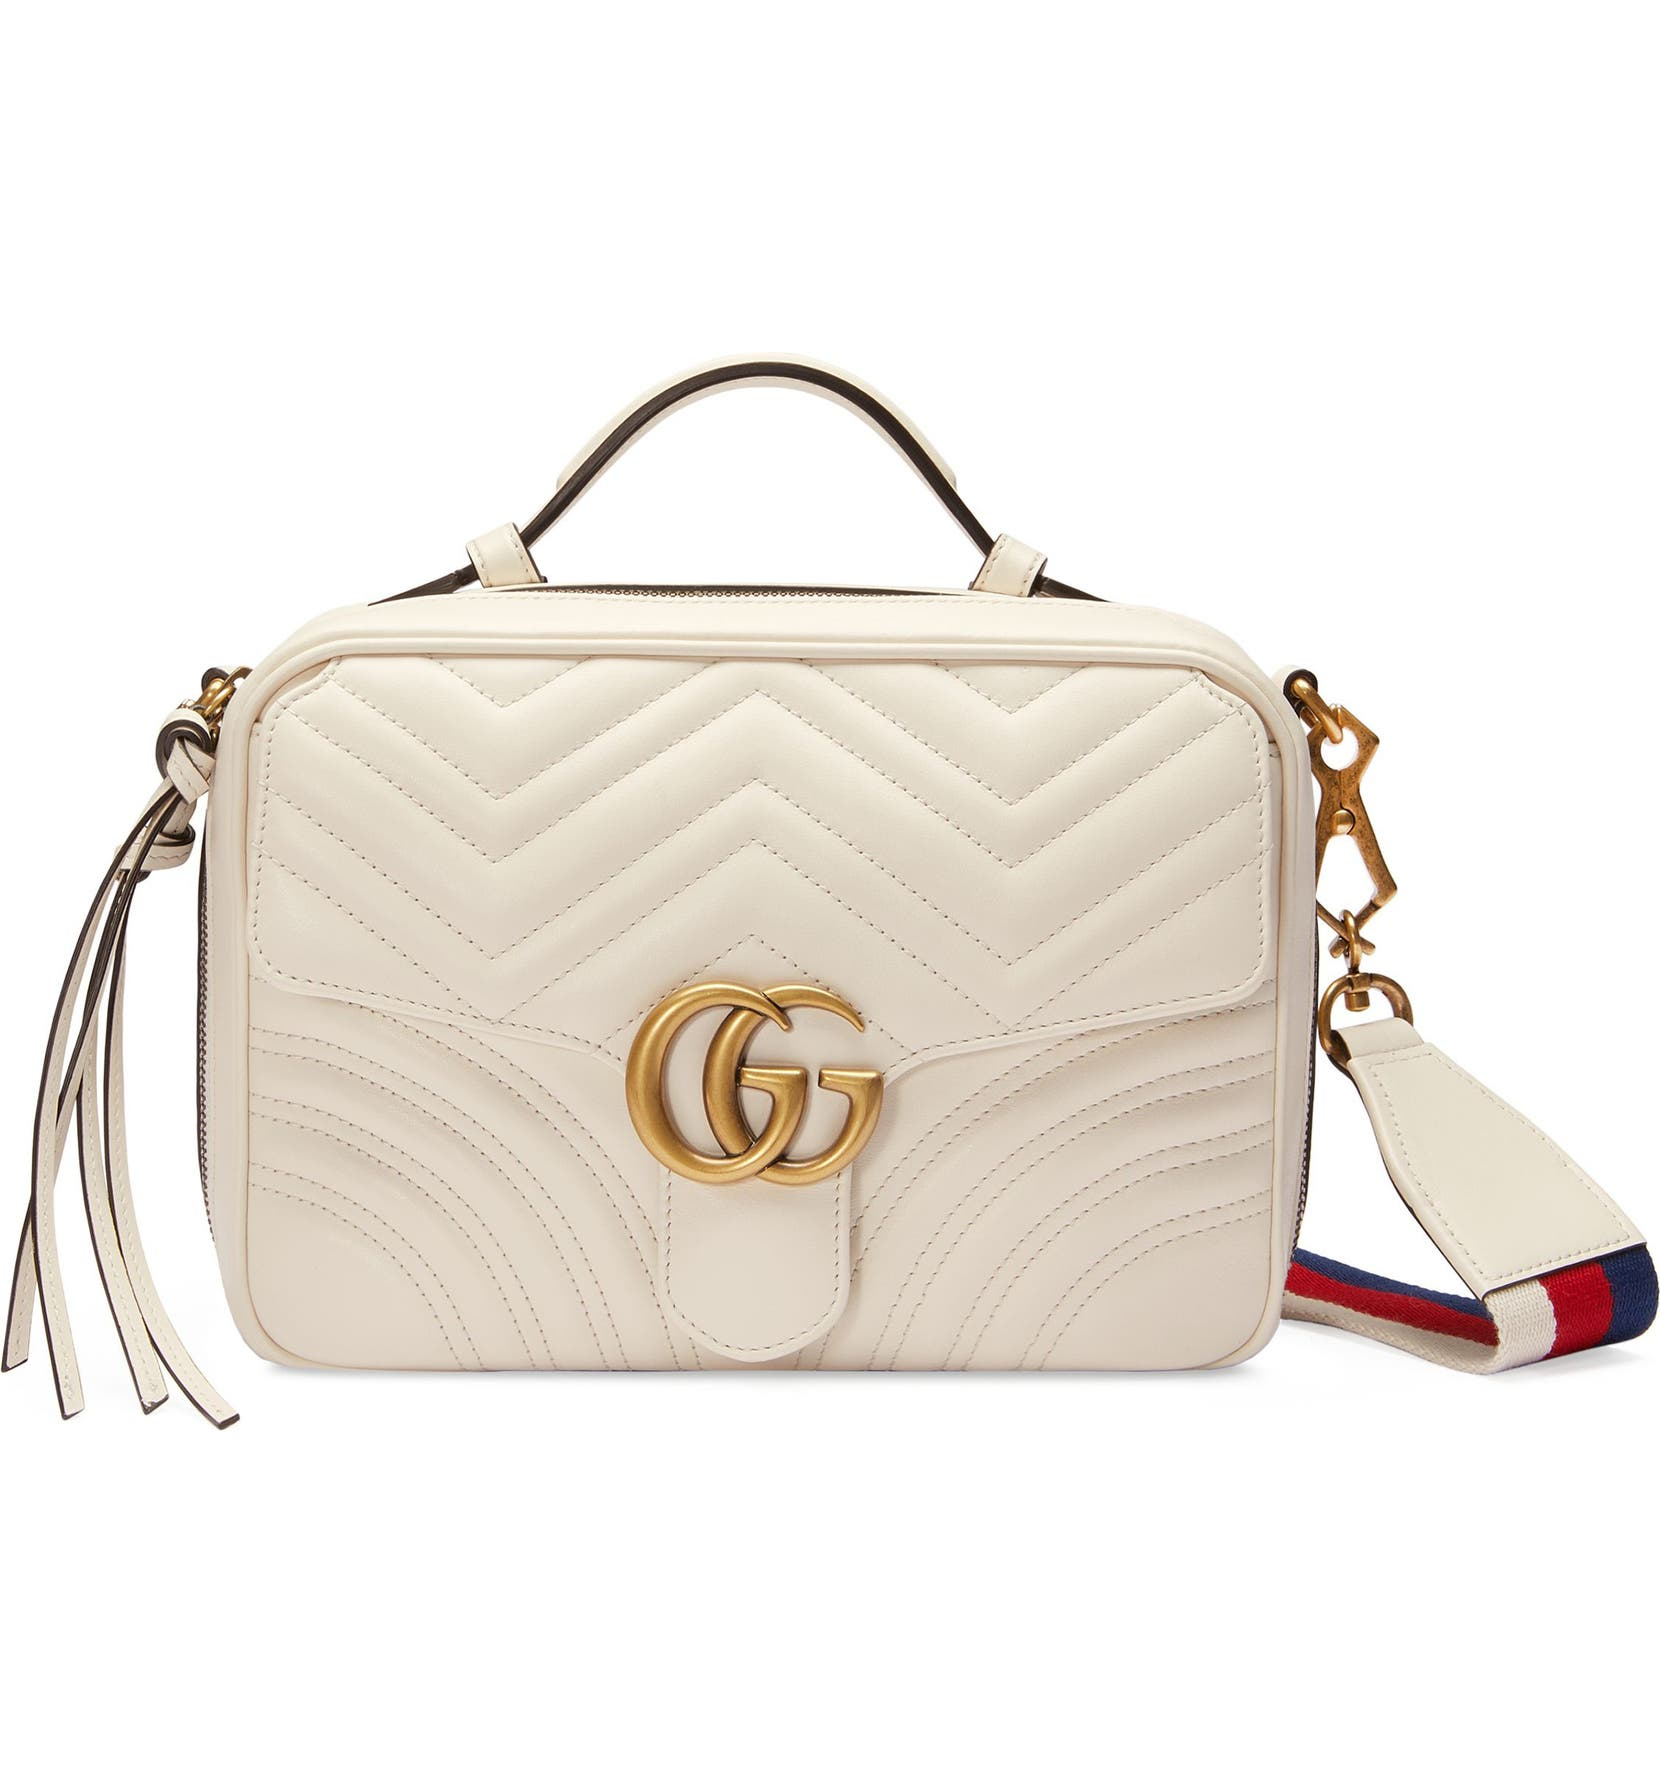 0e8343d89b85 Gucci Small GG Marmont 2.0 Matelassé Leather Camera Bag with Webbed Strap |  Nordstrom